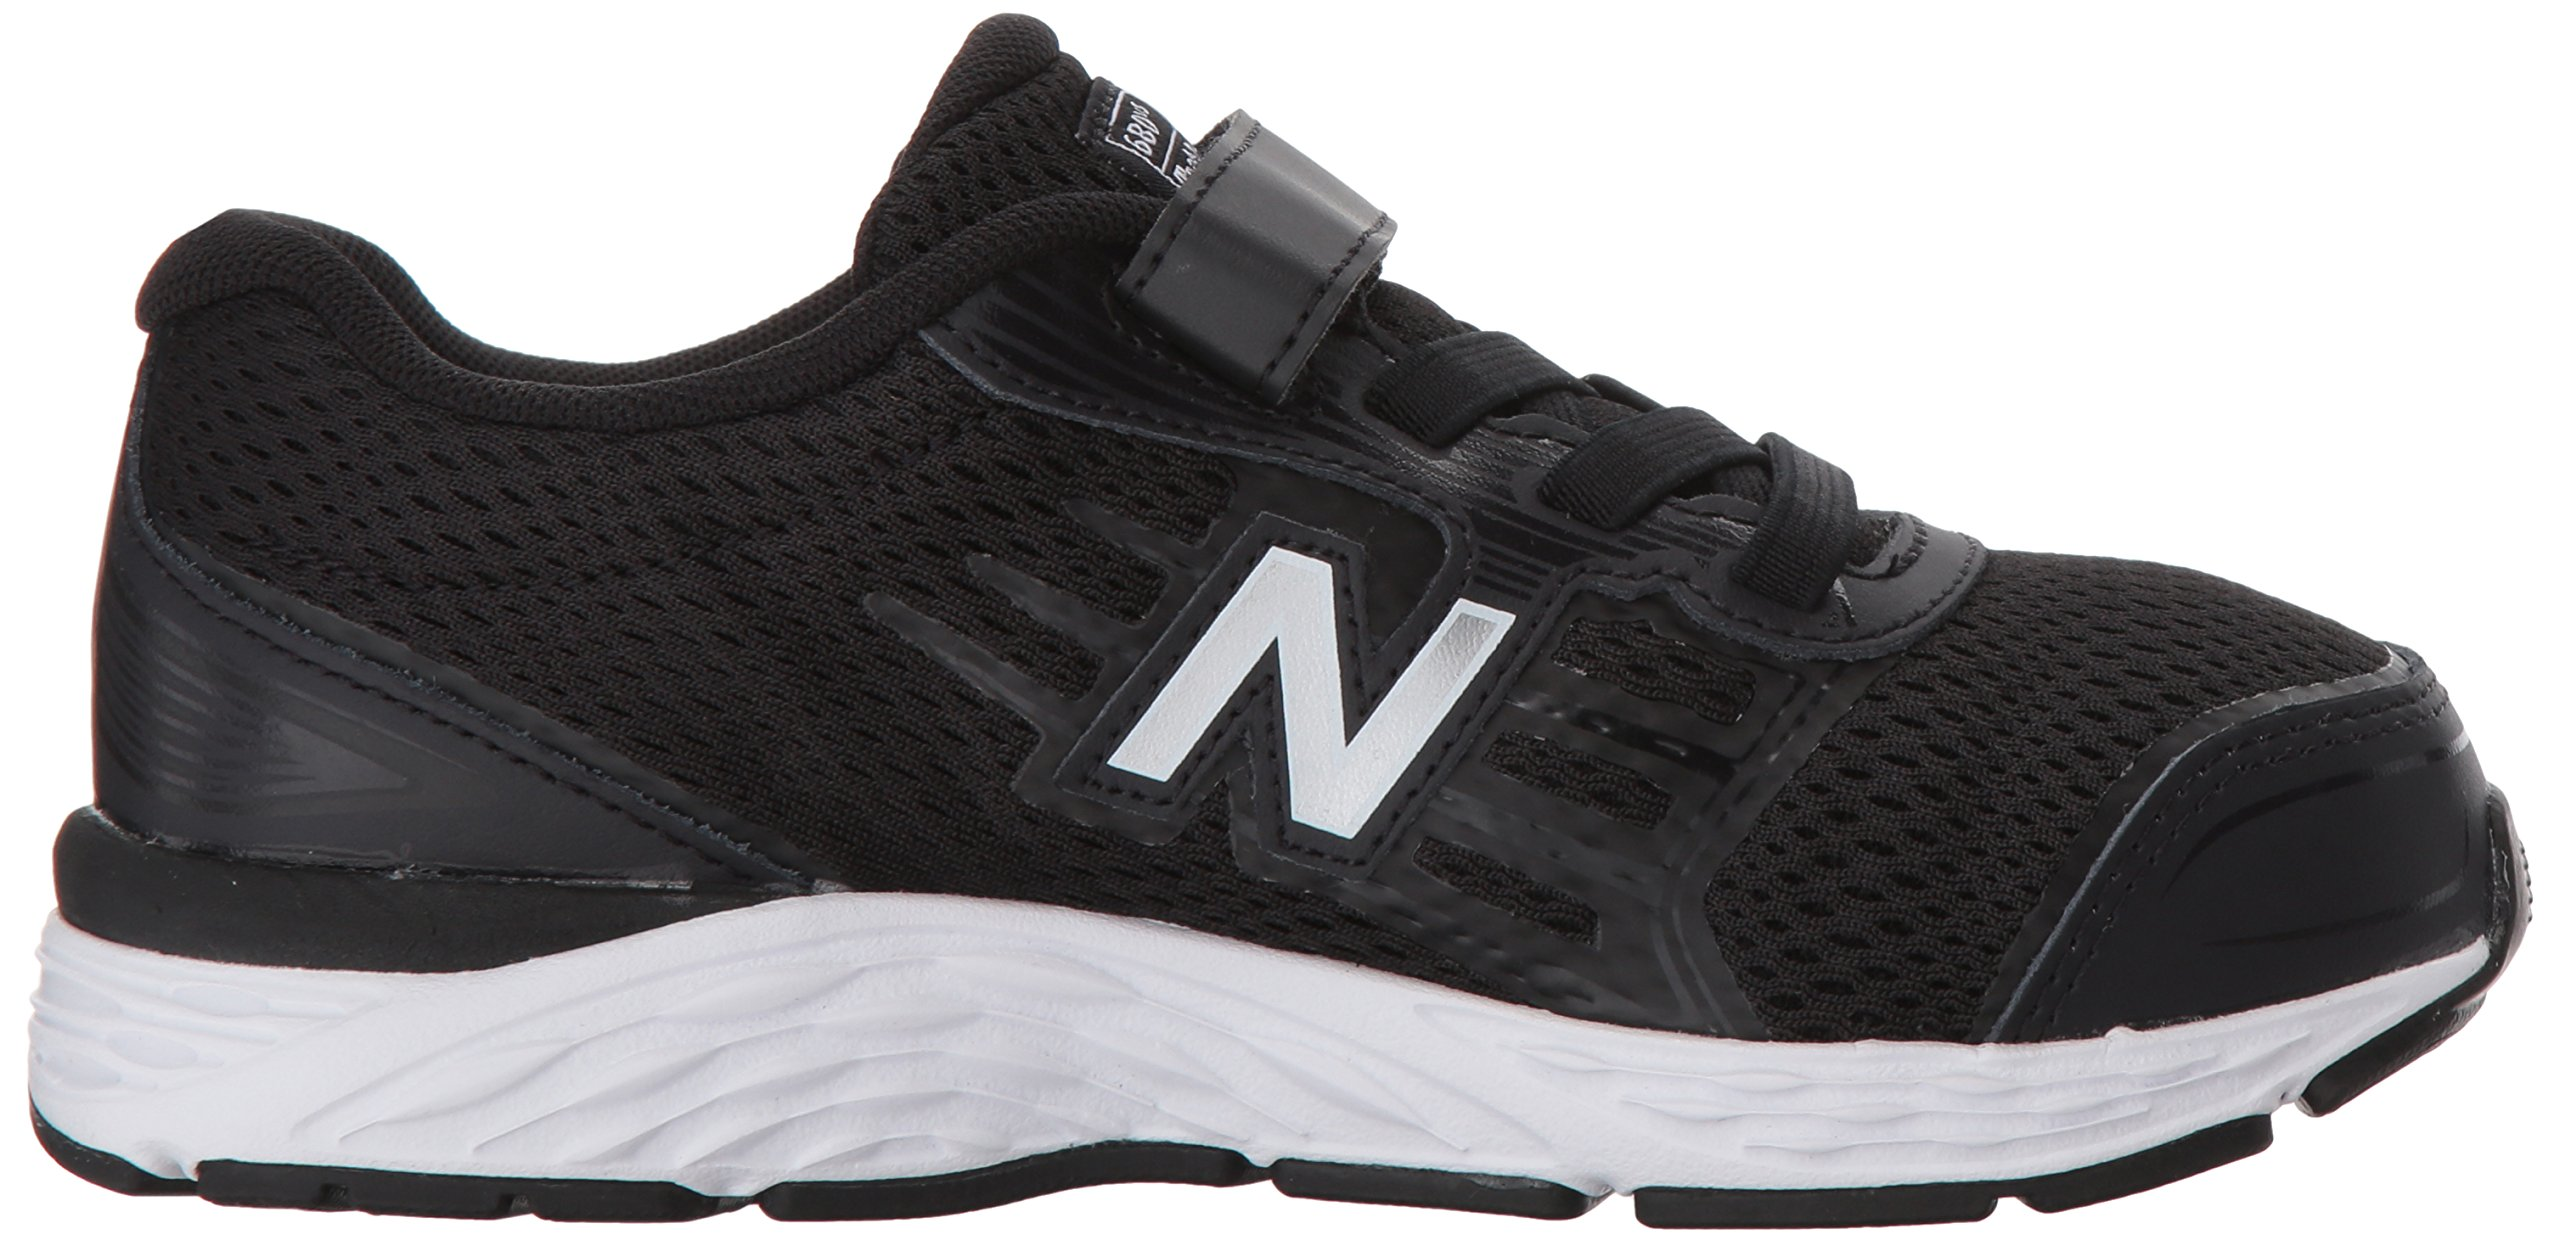 New Balance Boys' 680v5 Hook and Loop Running Shoe, Black/White, 9 M US Toddler by New Balance (Image #6)